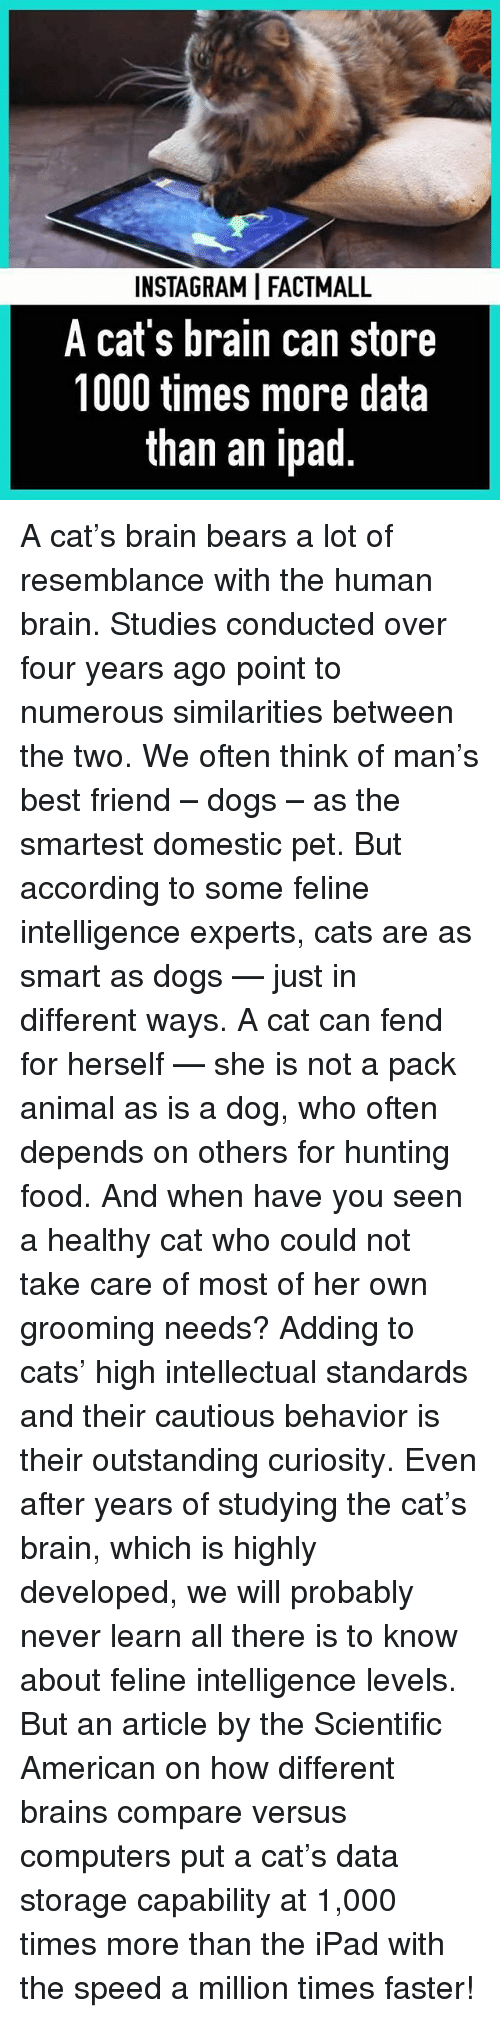 Best Friend, Brains, and Cats: INSTAGRAMI FACTMALL  A cat's brain can store  1000 times more data  than an ipad A cat's brain bears a lot of resemblance with the human brain. Studies conducted over four years ago point to numerous similarities between the two. We often think of man's best friend – dogs – as the smartest domestic pet. But according to some feline intelligence experts, cats are as smart as dogs — just in different ways. A cat can fend for herself — she is not a pack animal as is a dog, who often depends on others for hunting food. And when have you seen a healthy cat who could not take care of most of her own grooming needs? Adding to cats' high intellectual standards and their cautious behavior is their outstanding curiosity. Even after years of studying the cat's brain, which is highly developed, we will probably never learn all there is to know about feline intelligence levels. But an article by the Scientific American on how different brains compare versus computers put a cat's data storage capability at 1,000 times more than the iPad with the speed a million times faster!